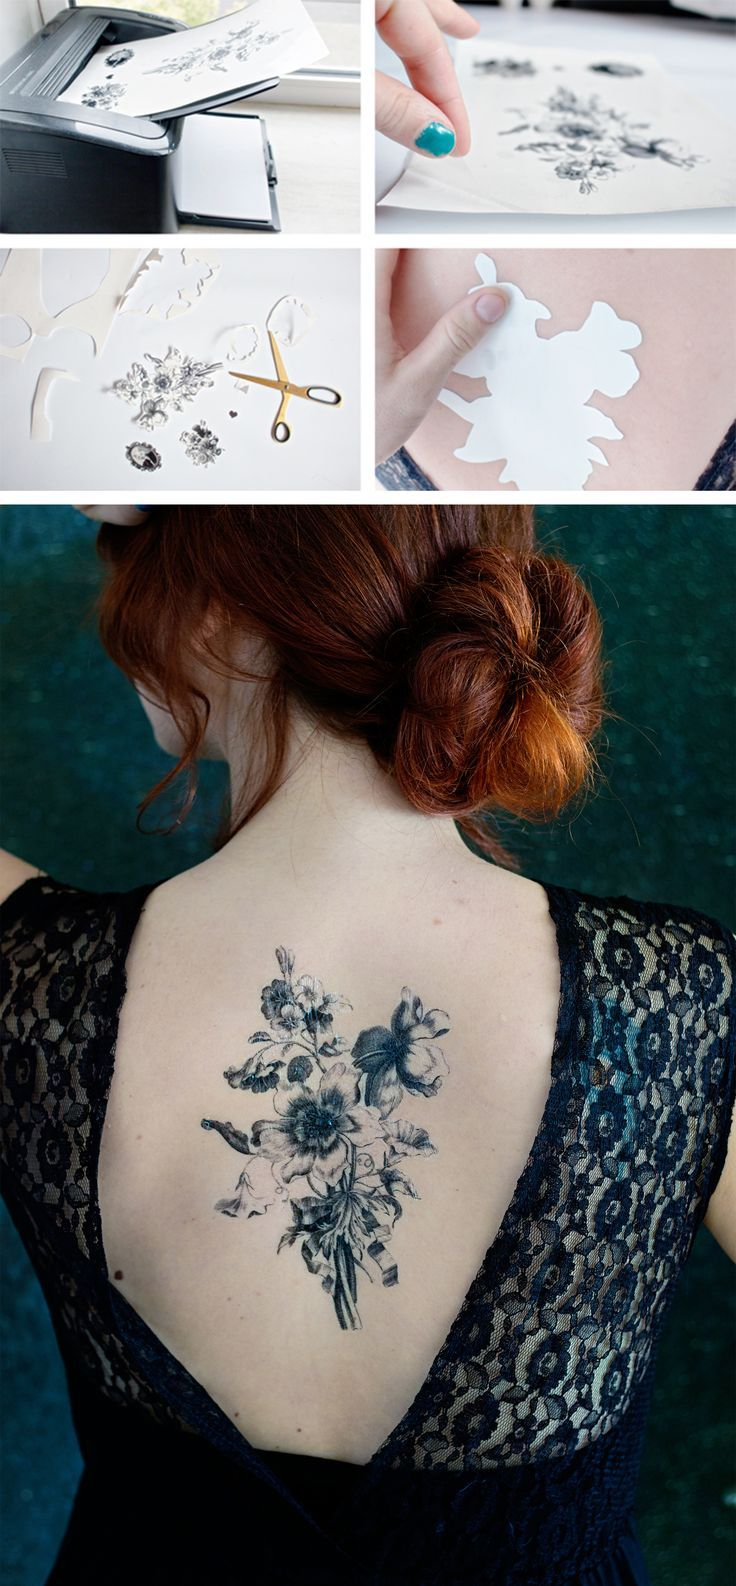 Custom Temporary Tattoos Free Color Proof Custom Tattoos - Did you know that you can make your own temporary tattoos diy by lana red